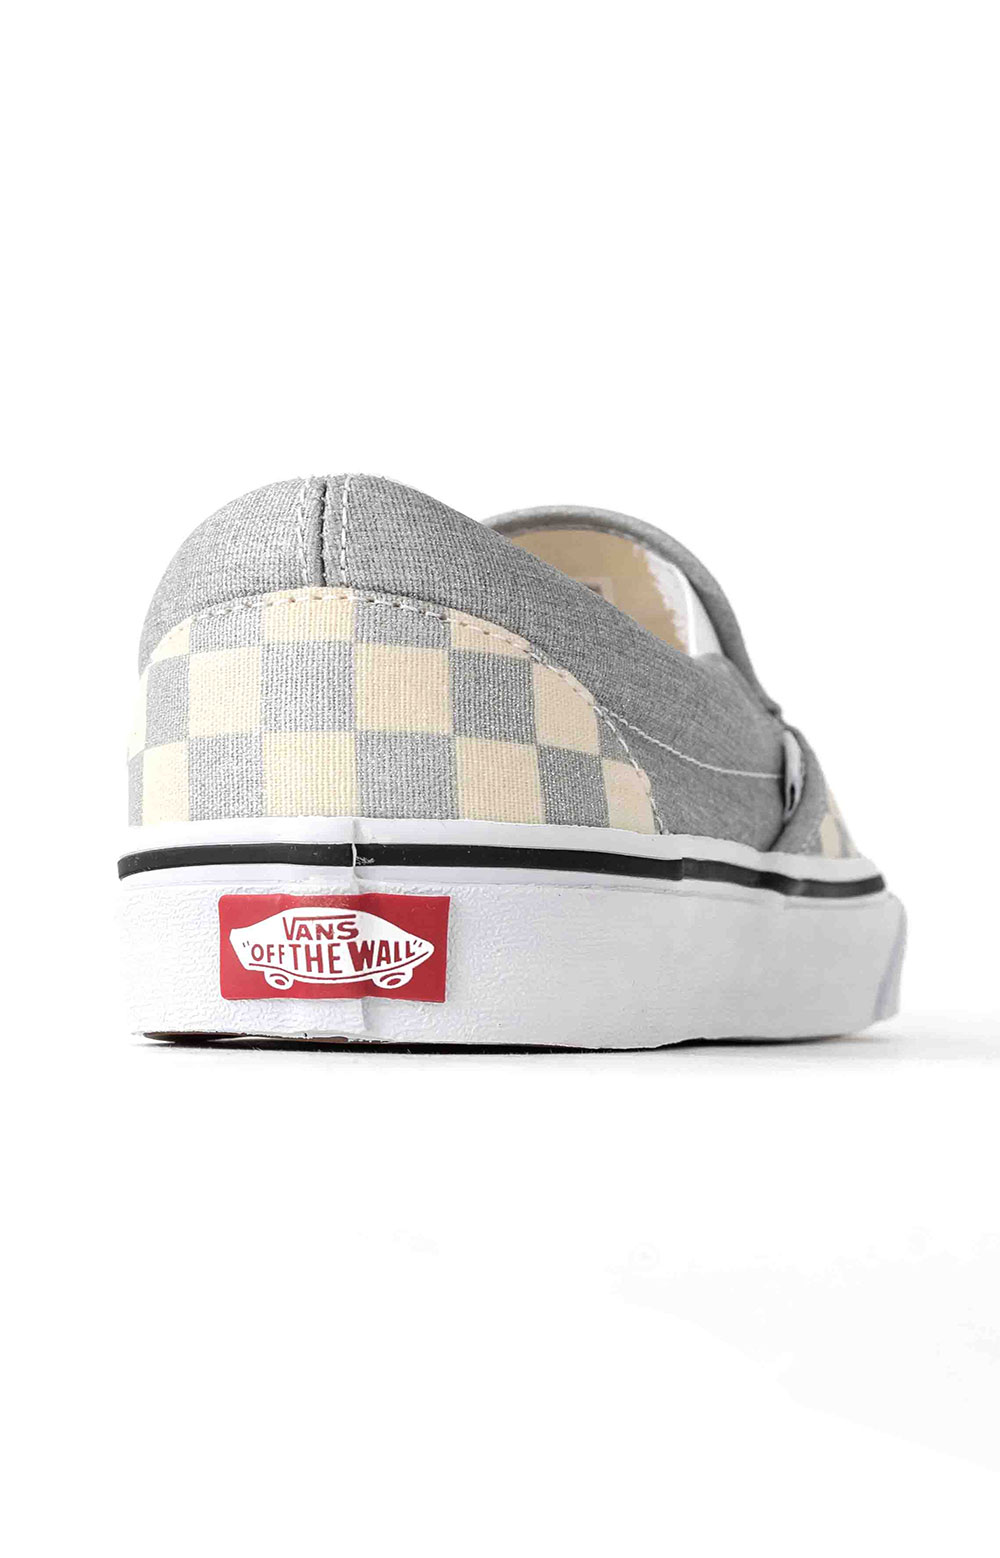 (U38WWS3) Checkerboard Classic Slip-On Shoe - Silver 5